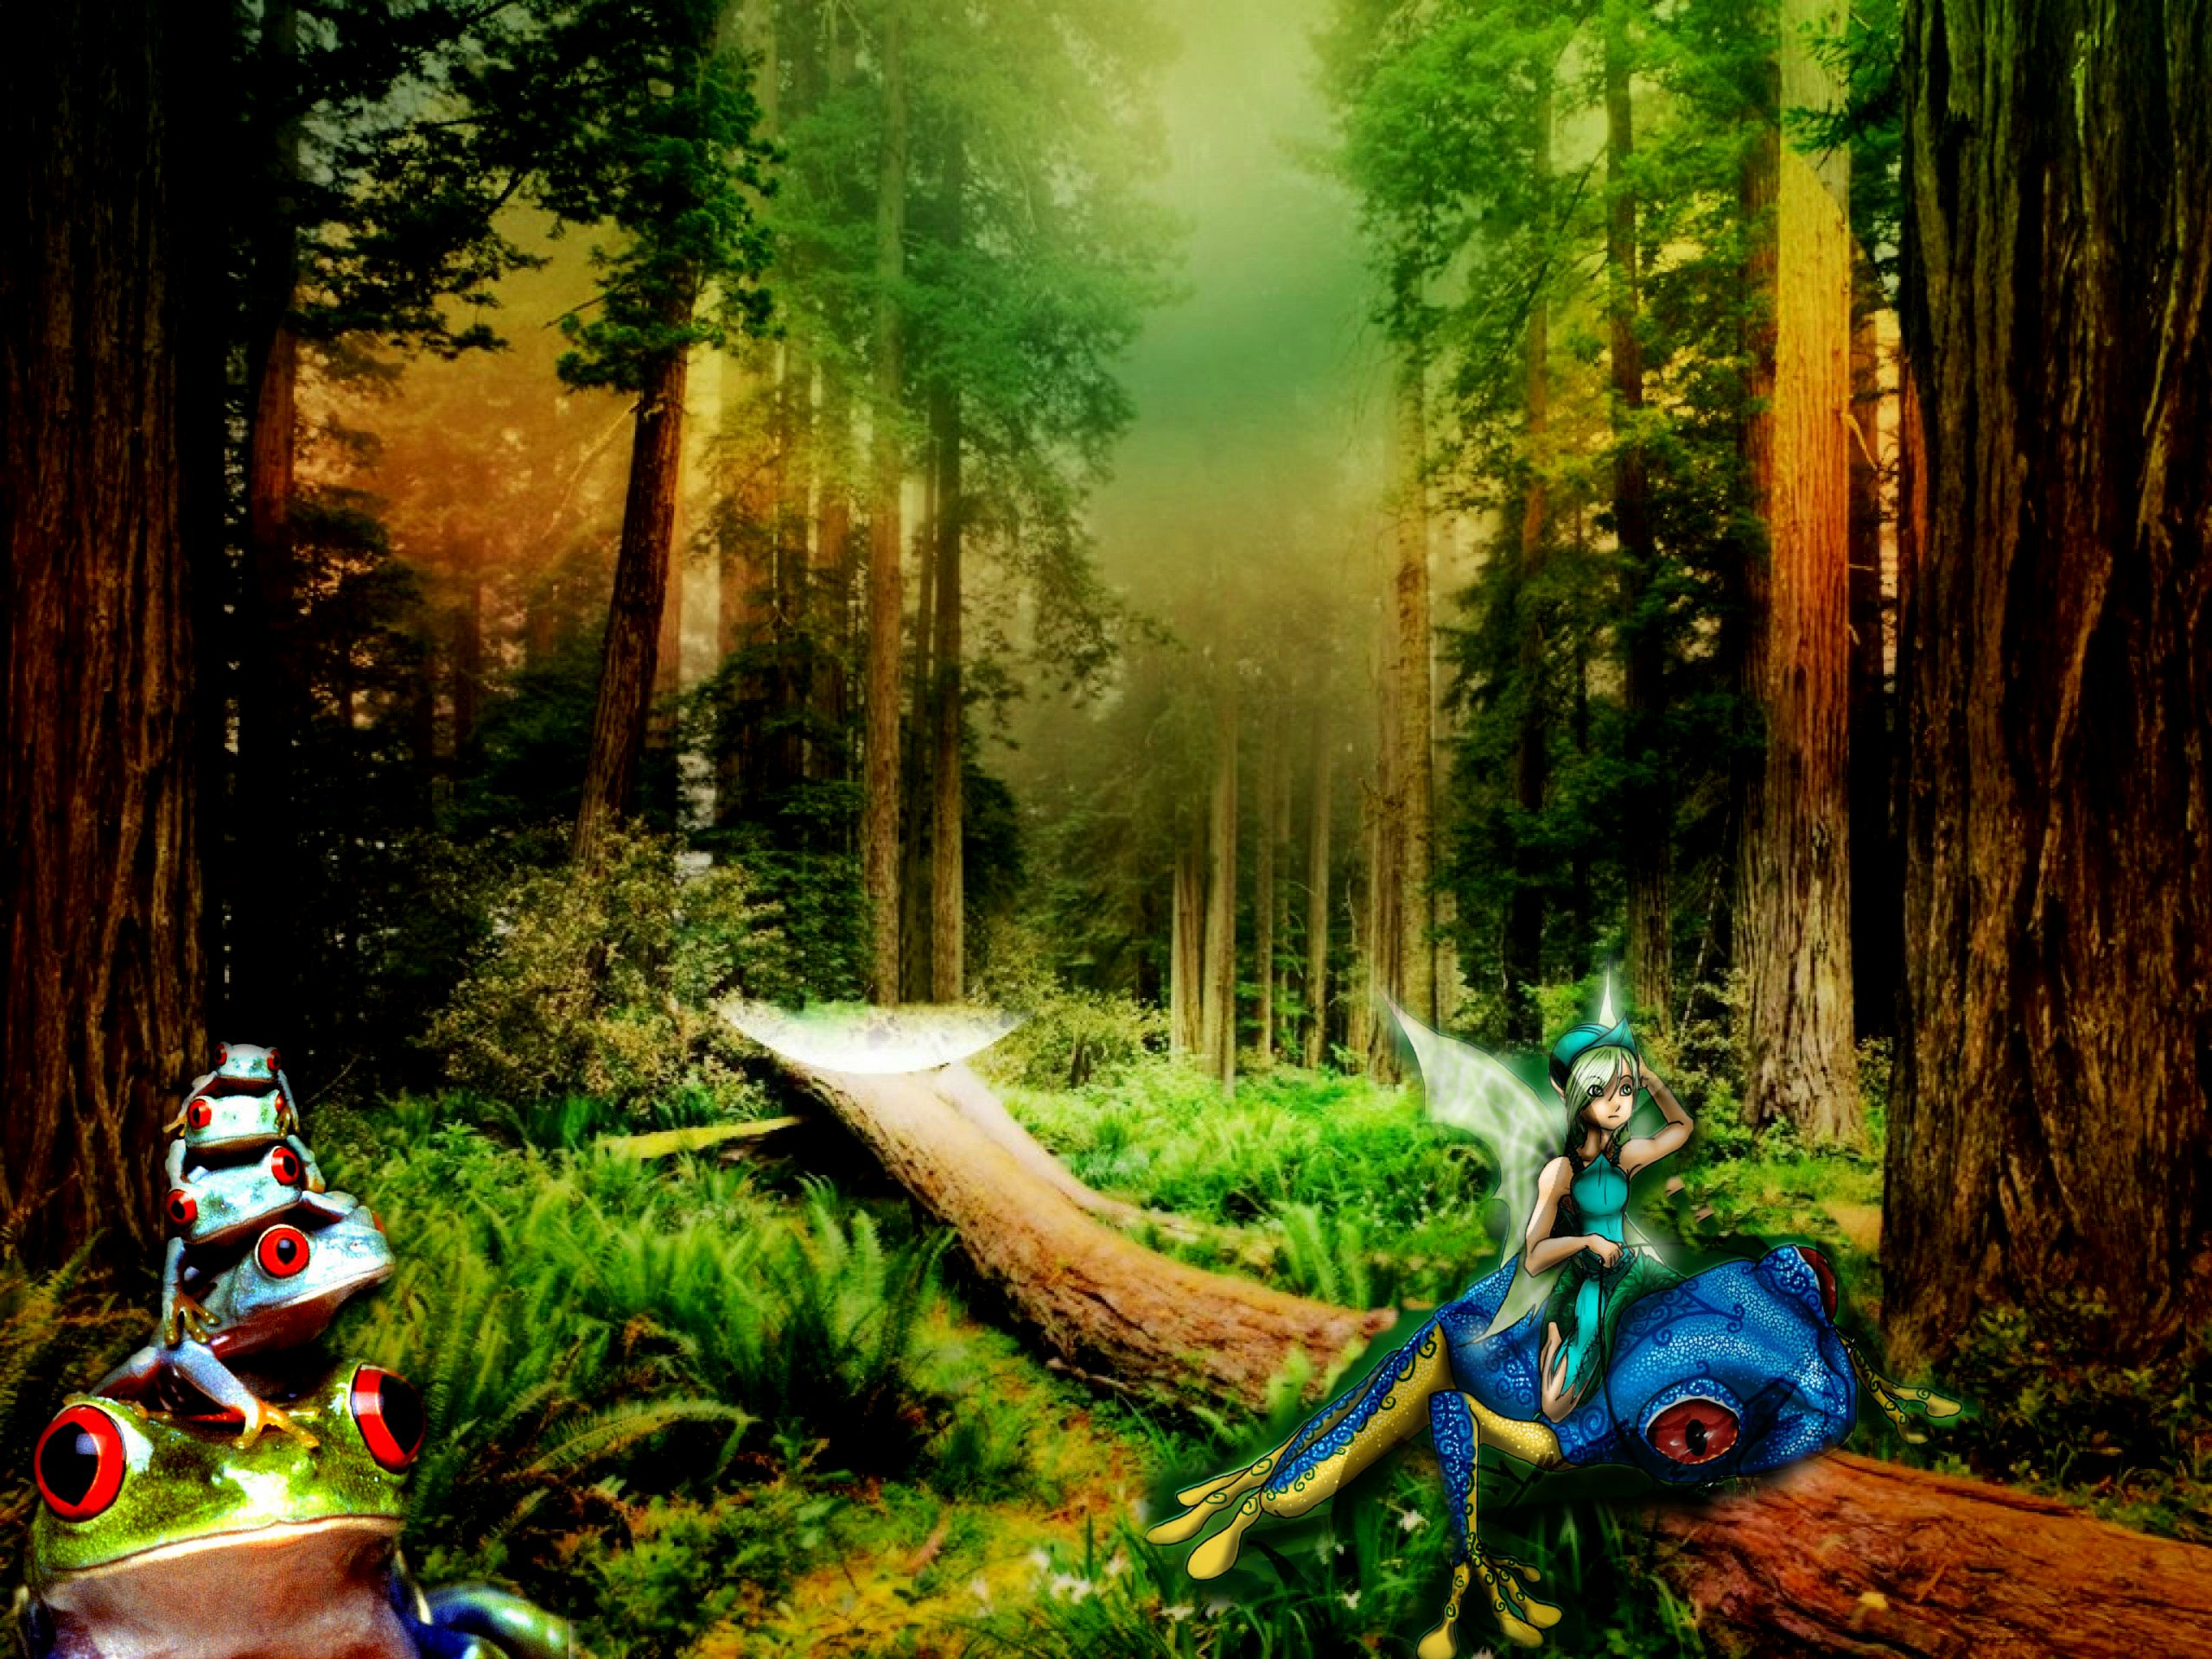 Enchanted Forest Wallpaper Wallpapersafari